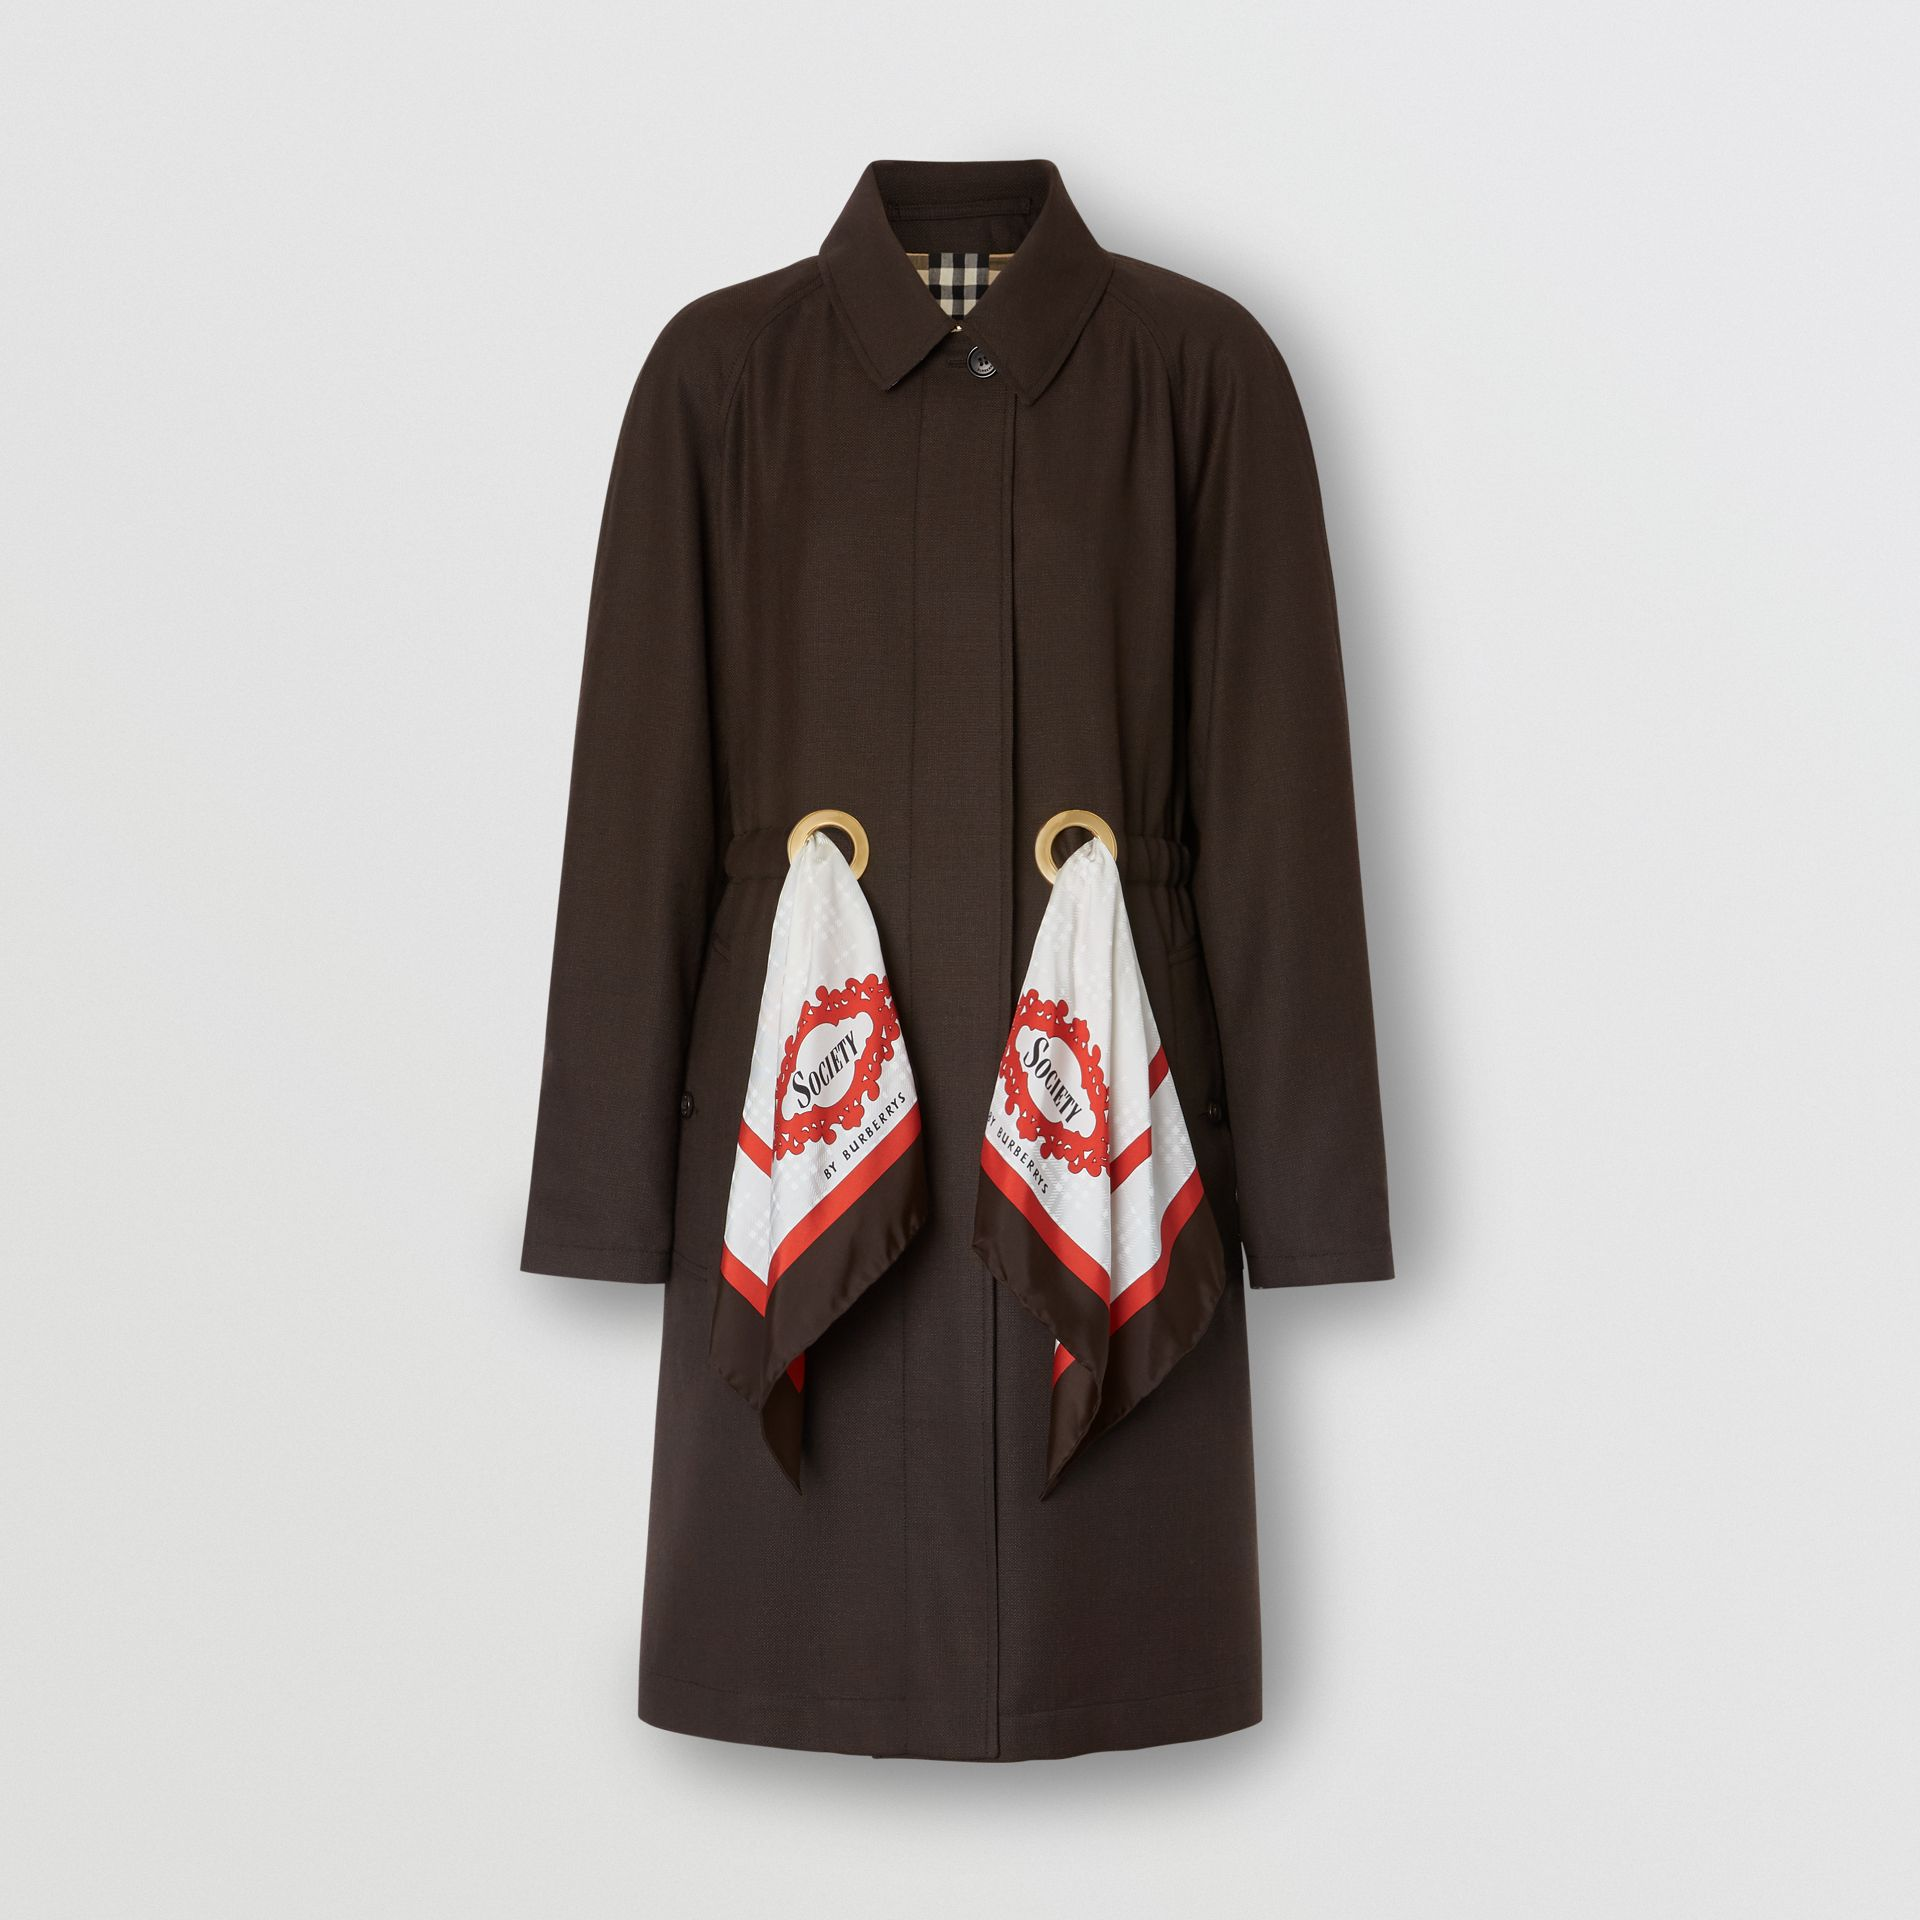 Scarf Detail Wool Car Coat in Coffee - Women | Burberry - gallery image 3